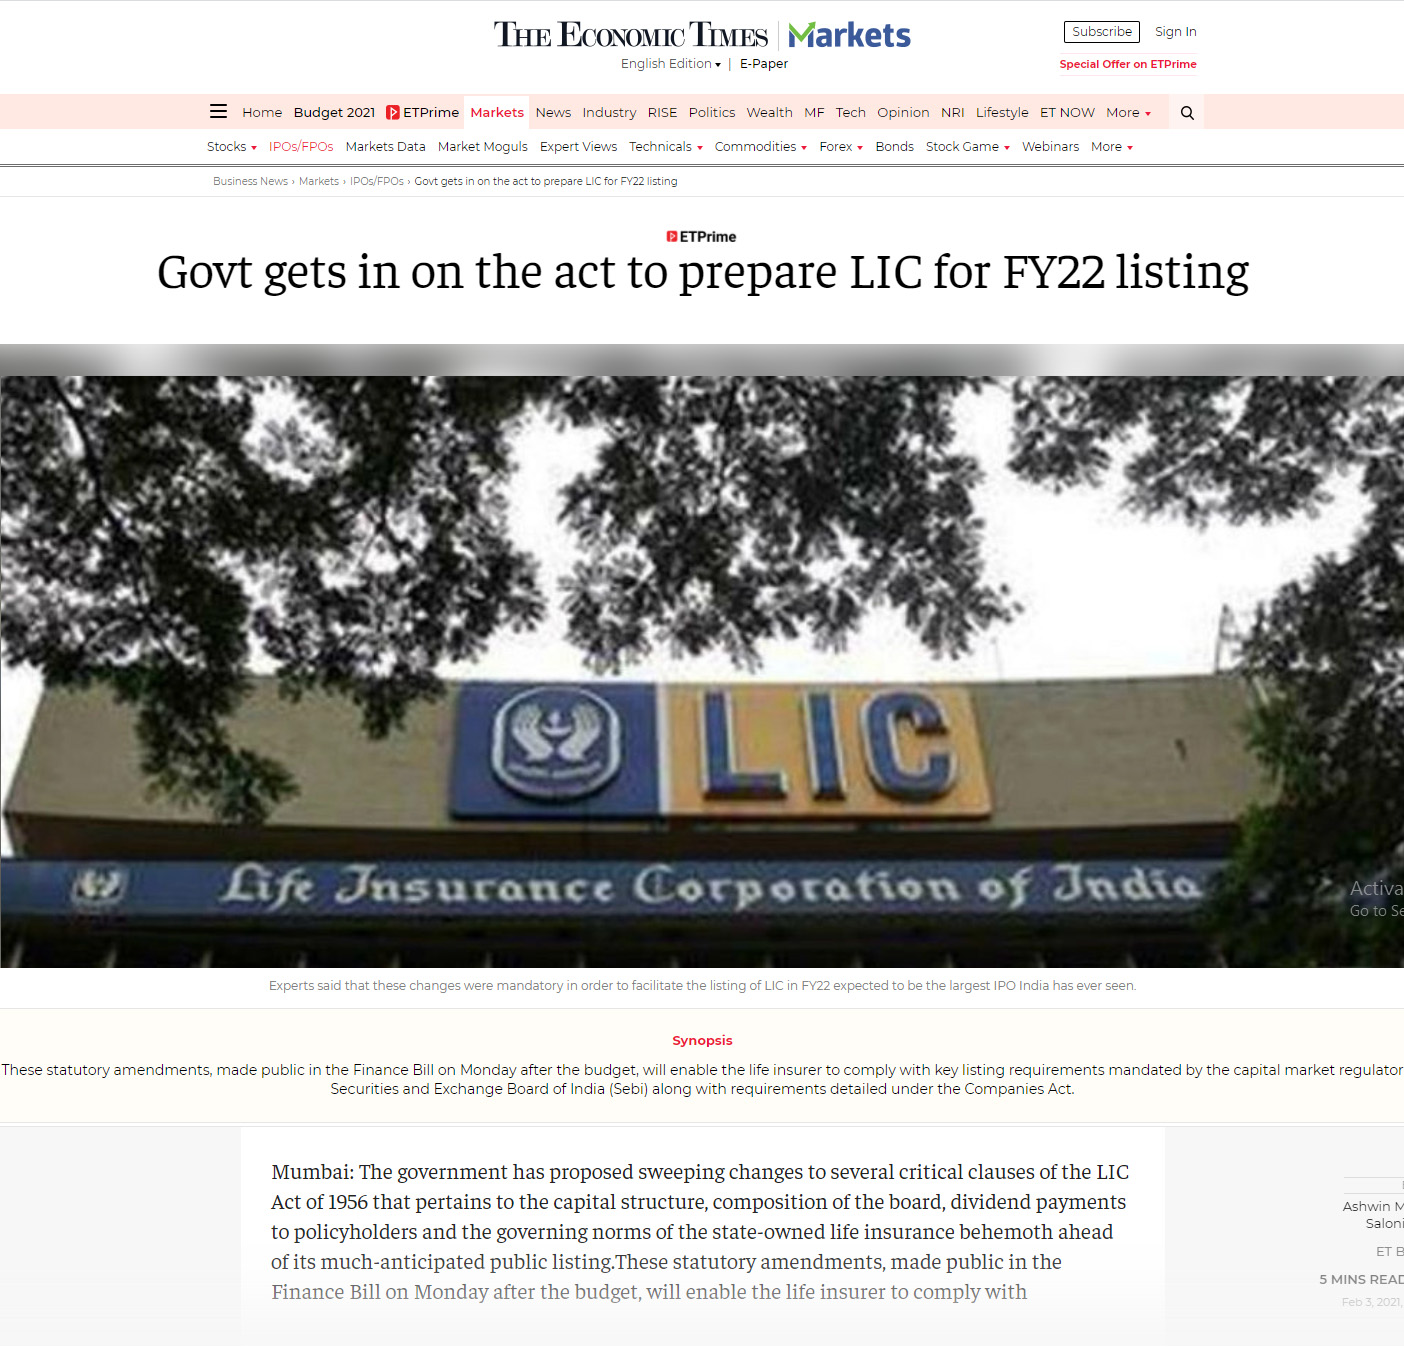 Govt gets in on the act to prepare LIC for FY22 listing